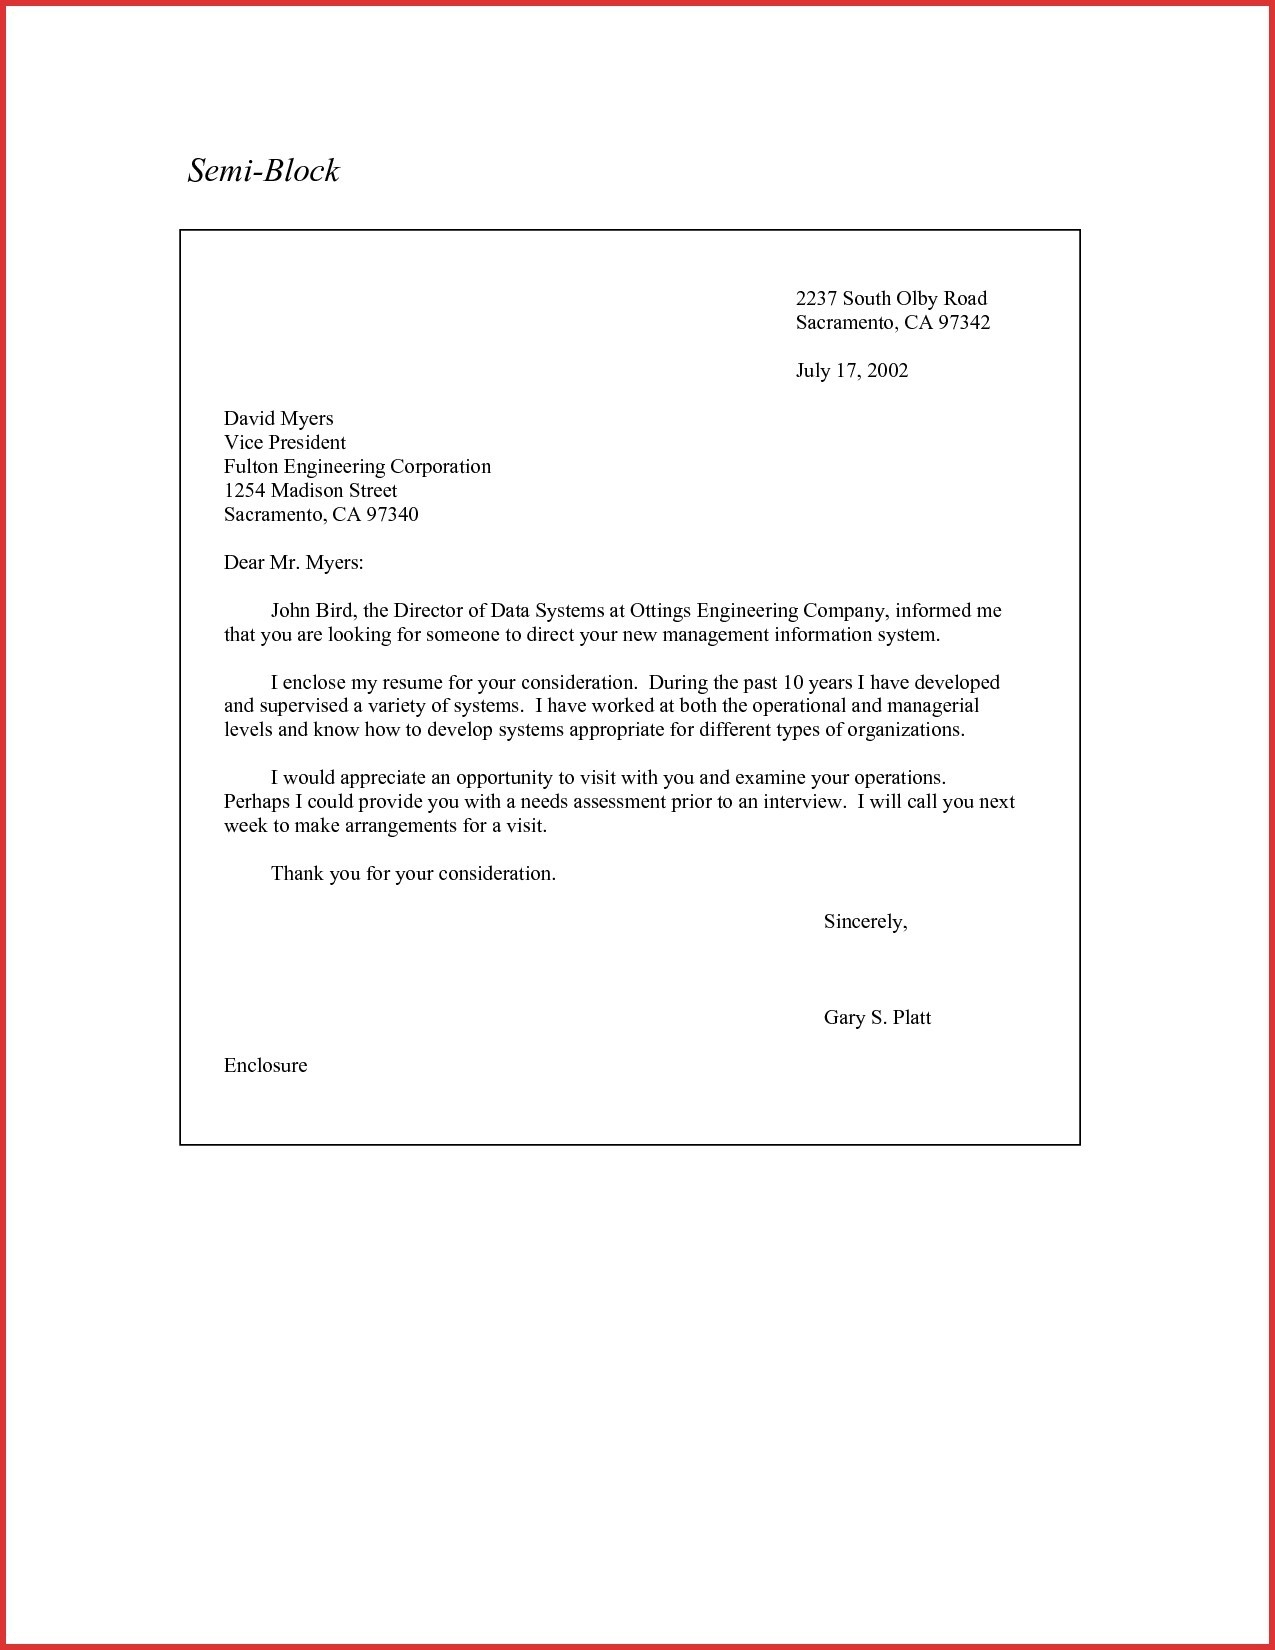 Modified Block Letter Template - Letter Resignation Block Letter format New Resignation Letter